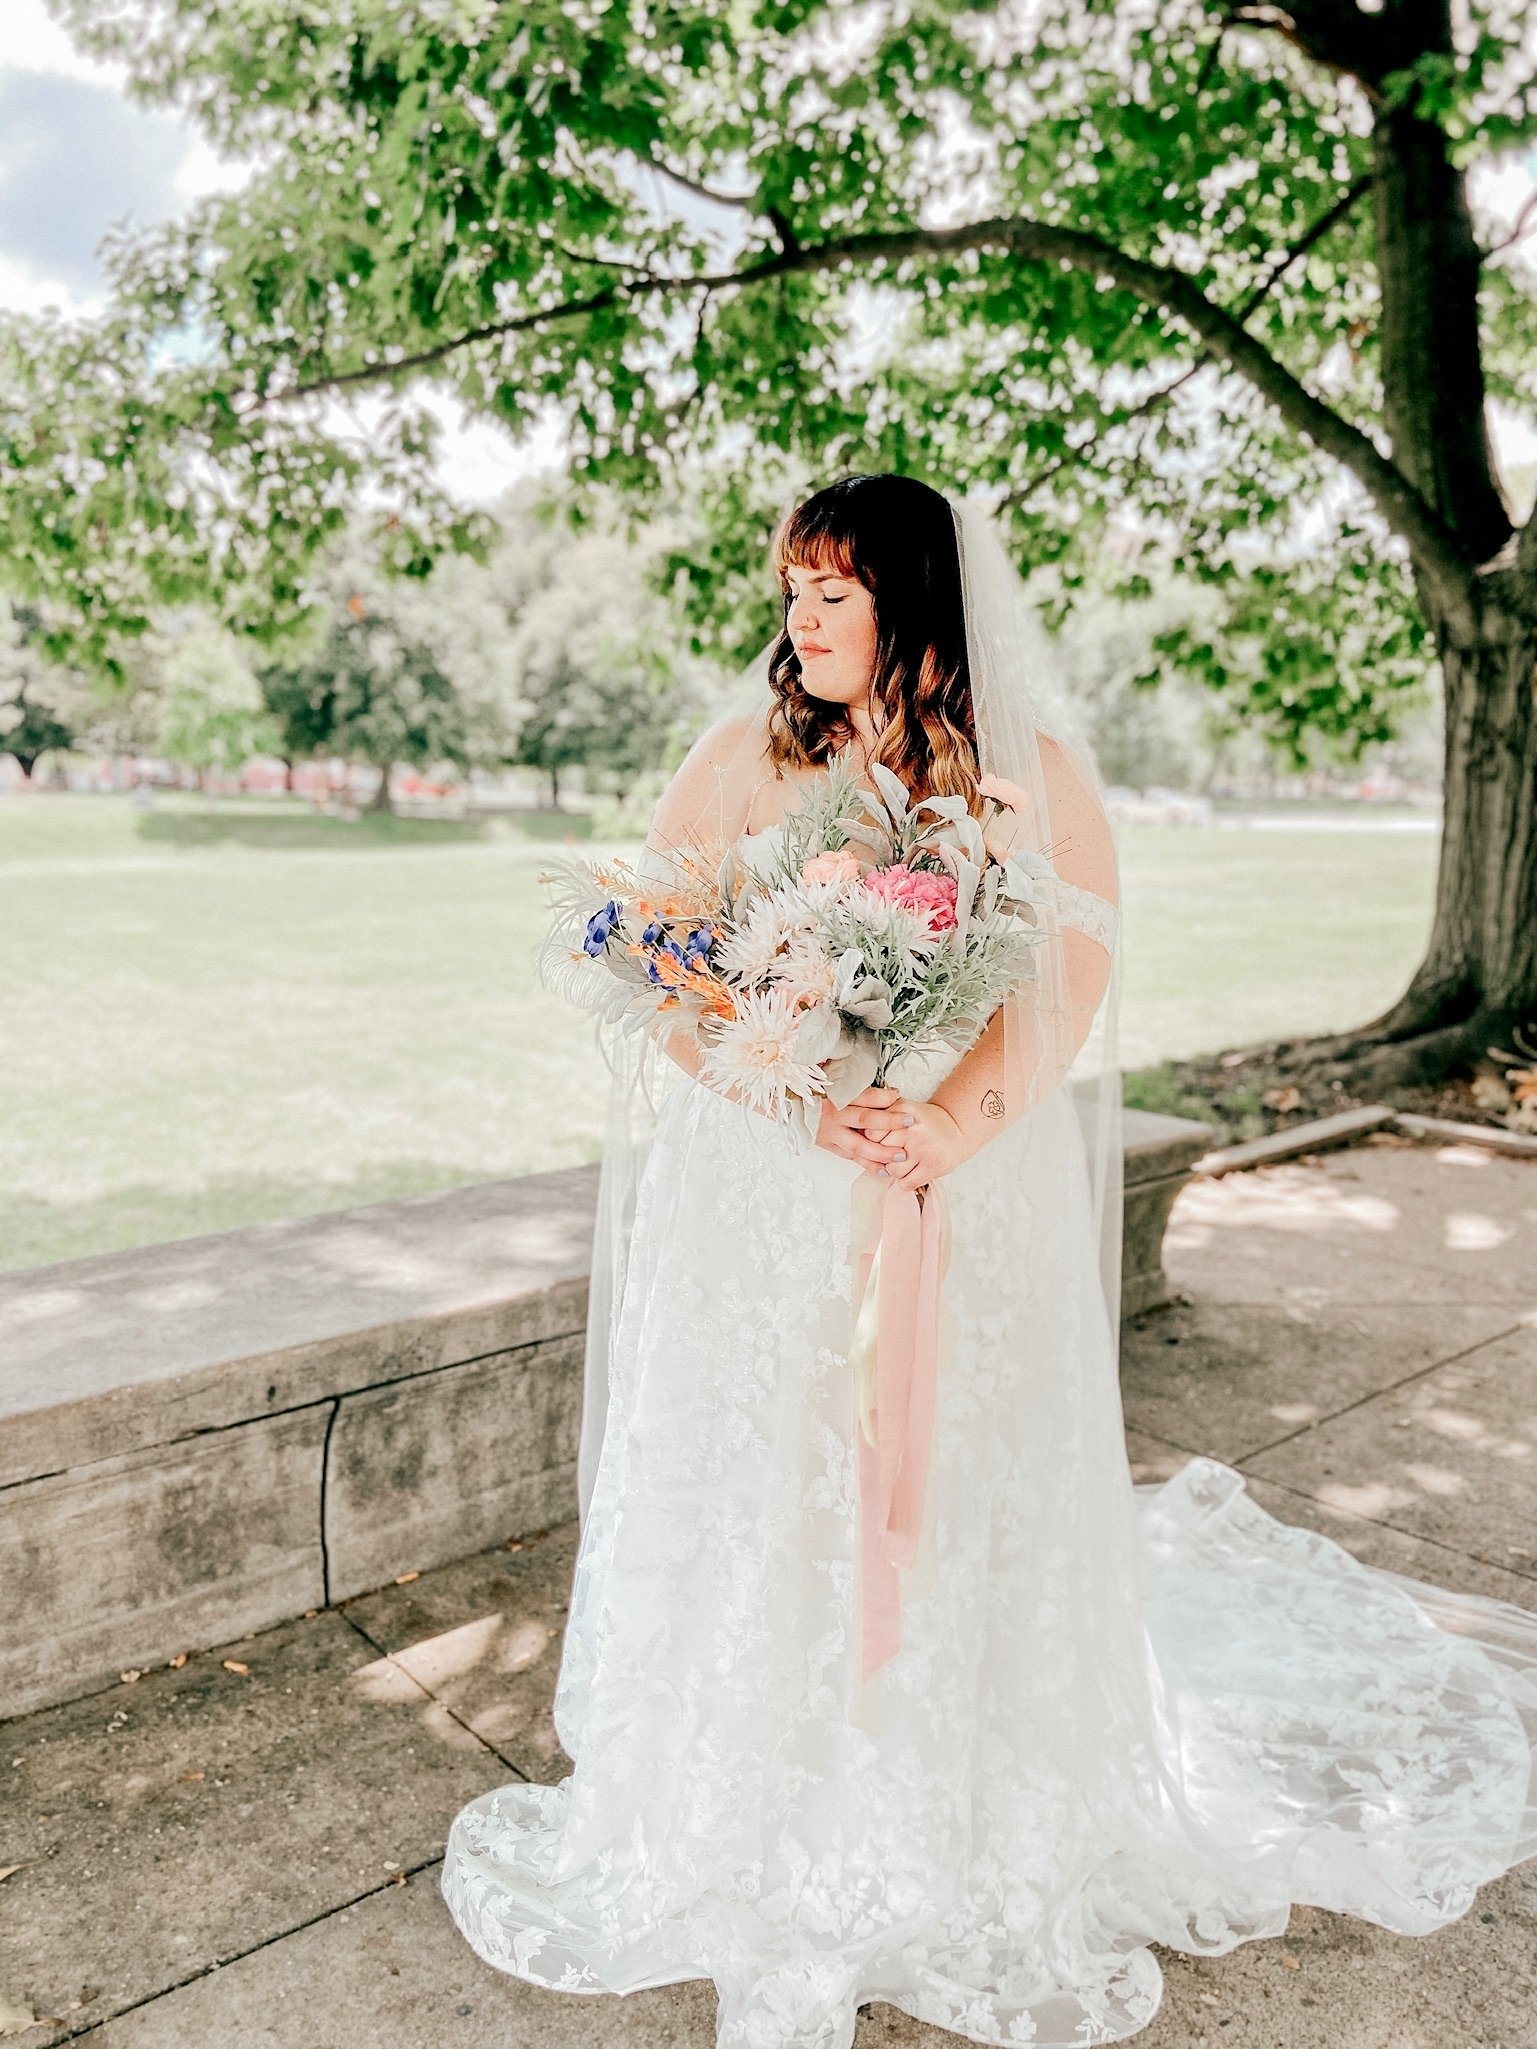 wedding photo with a veil and bouquet of flowers